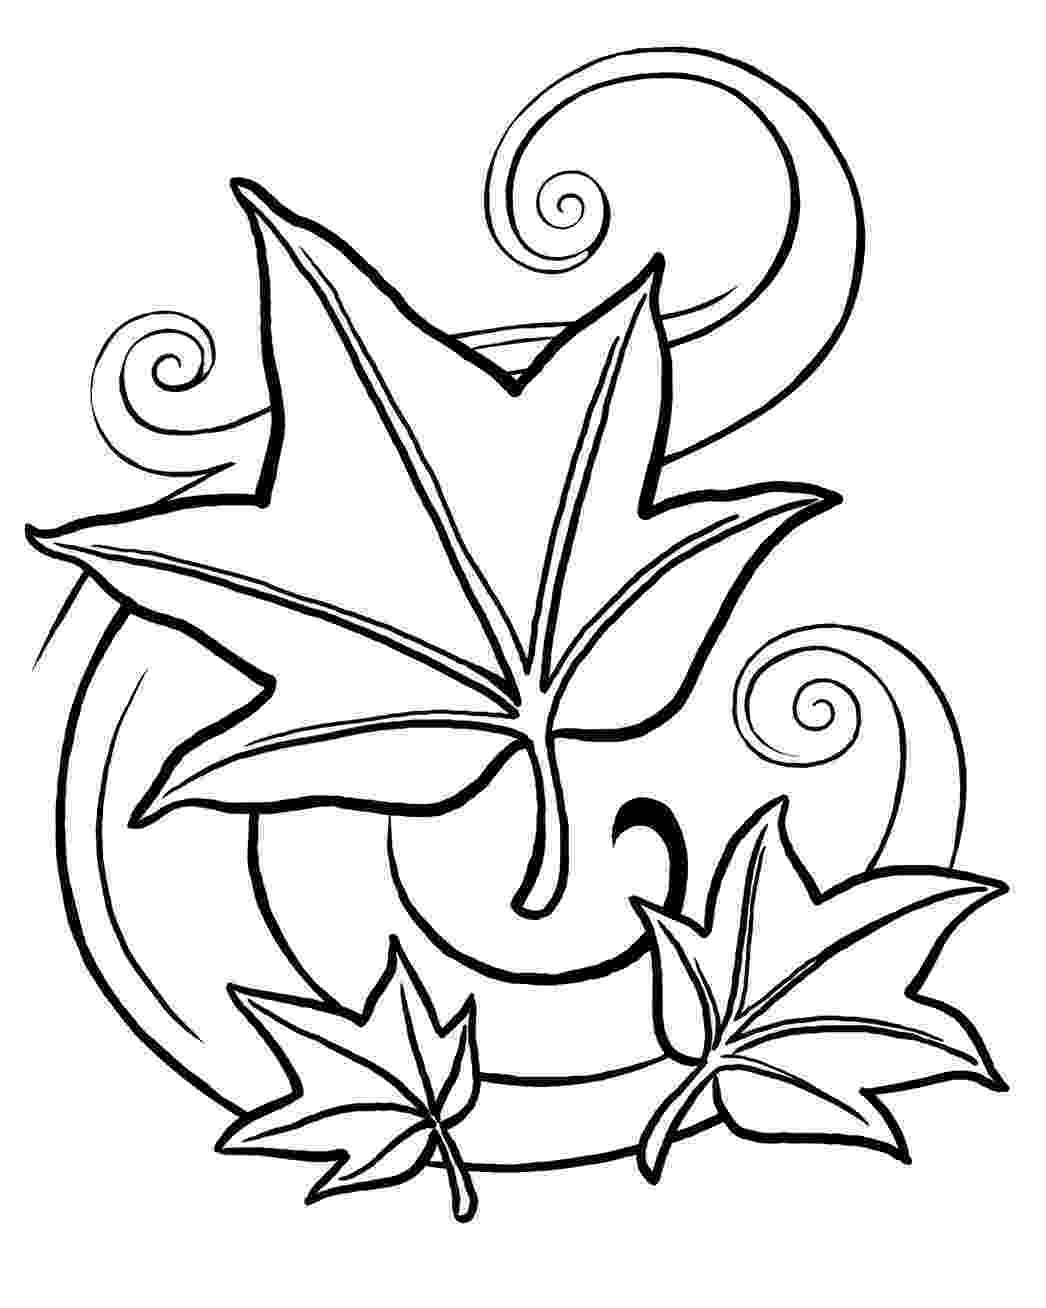 autumn leaves coloring pages fall leaves coloring pages getcoloringpagescom coloring pages autumn leaves